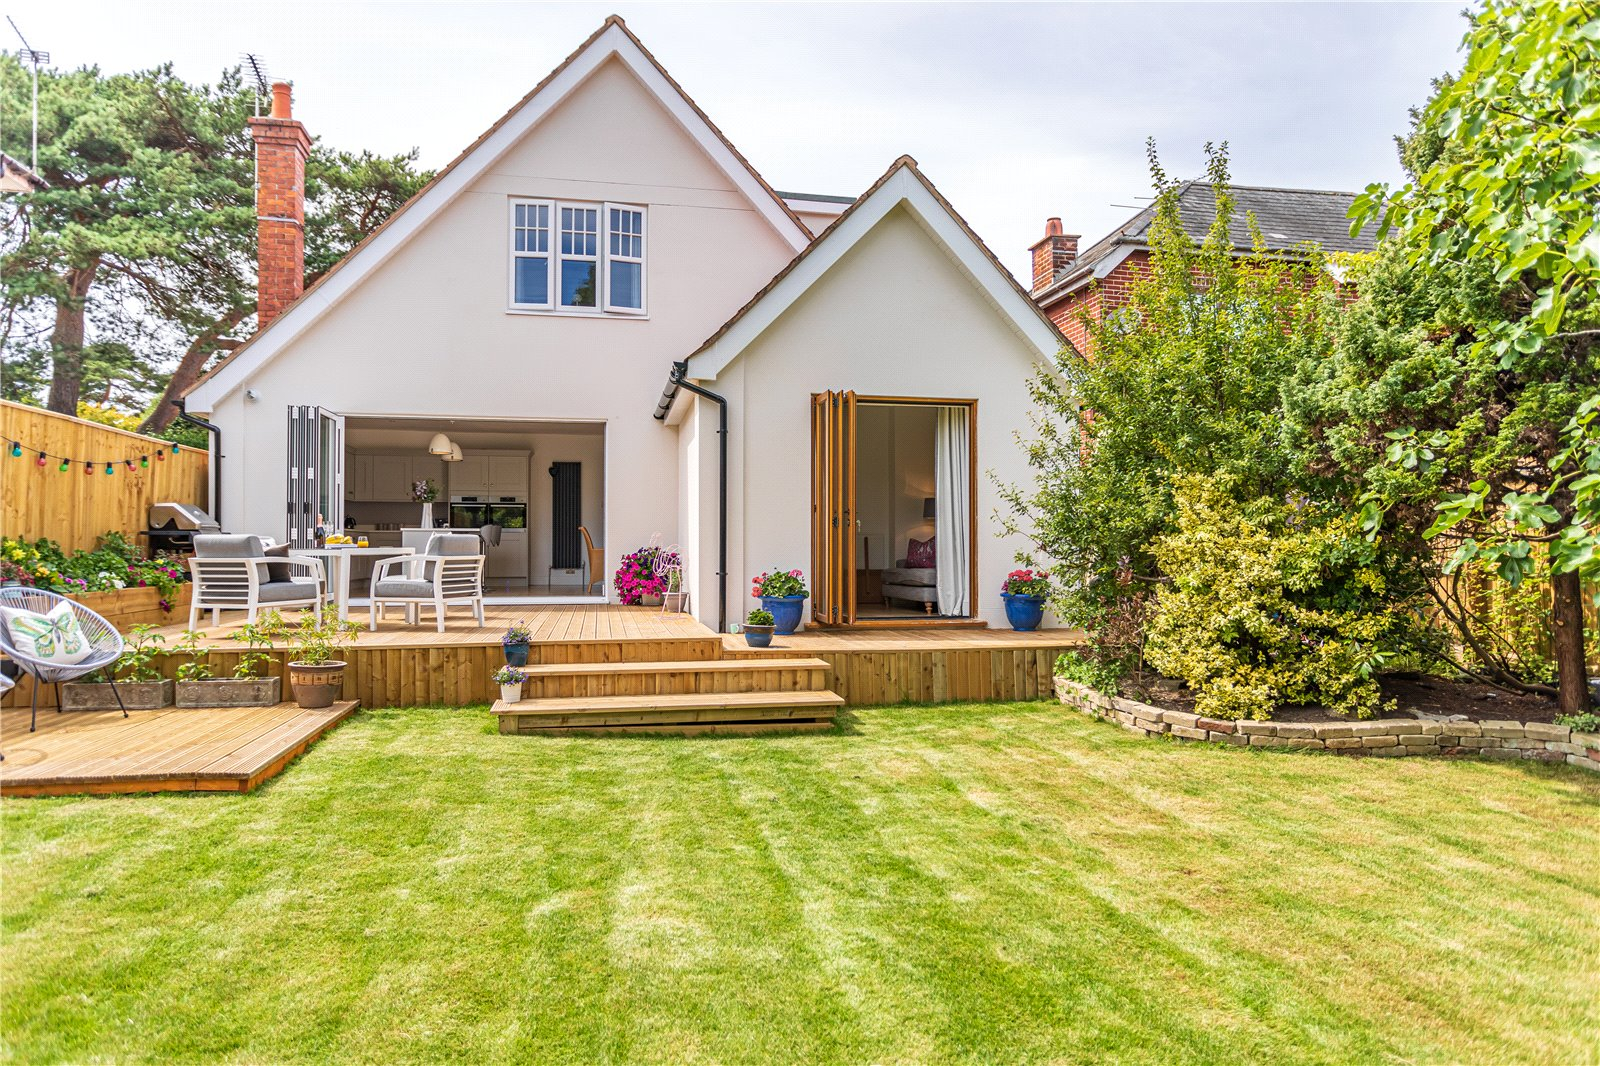 4 bed house for sale in Mayfield Avenue, Lower Parkstone, BH14